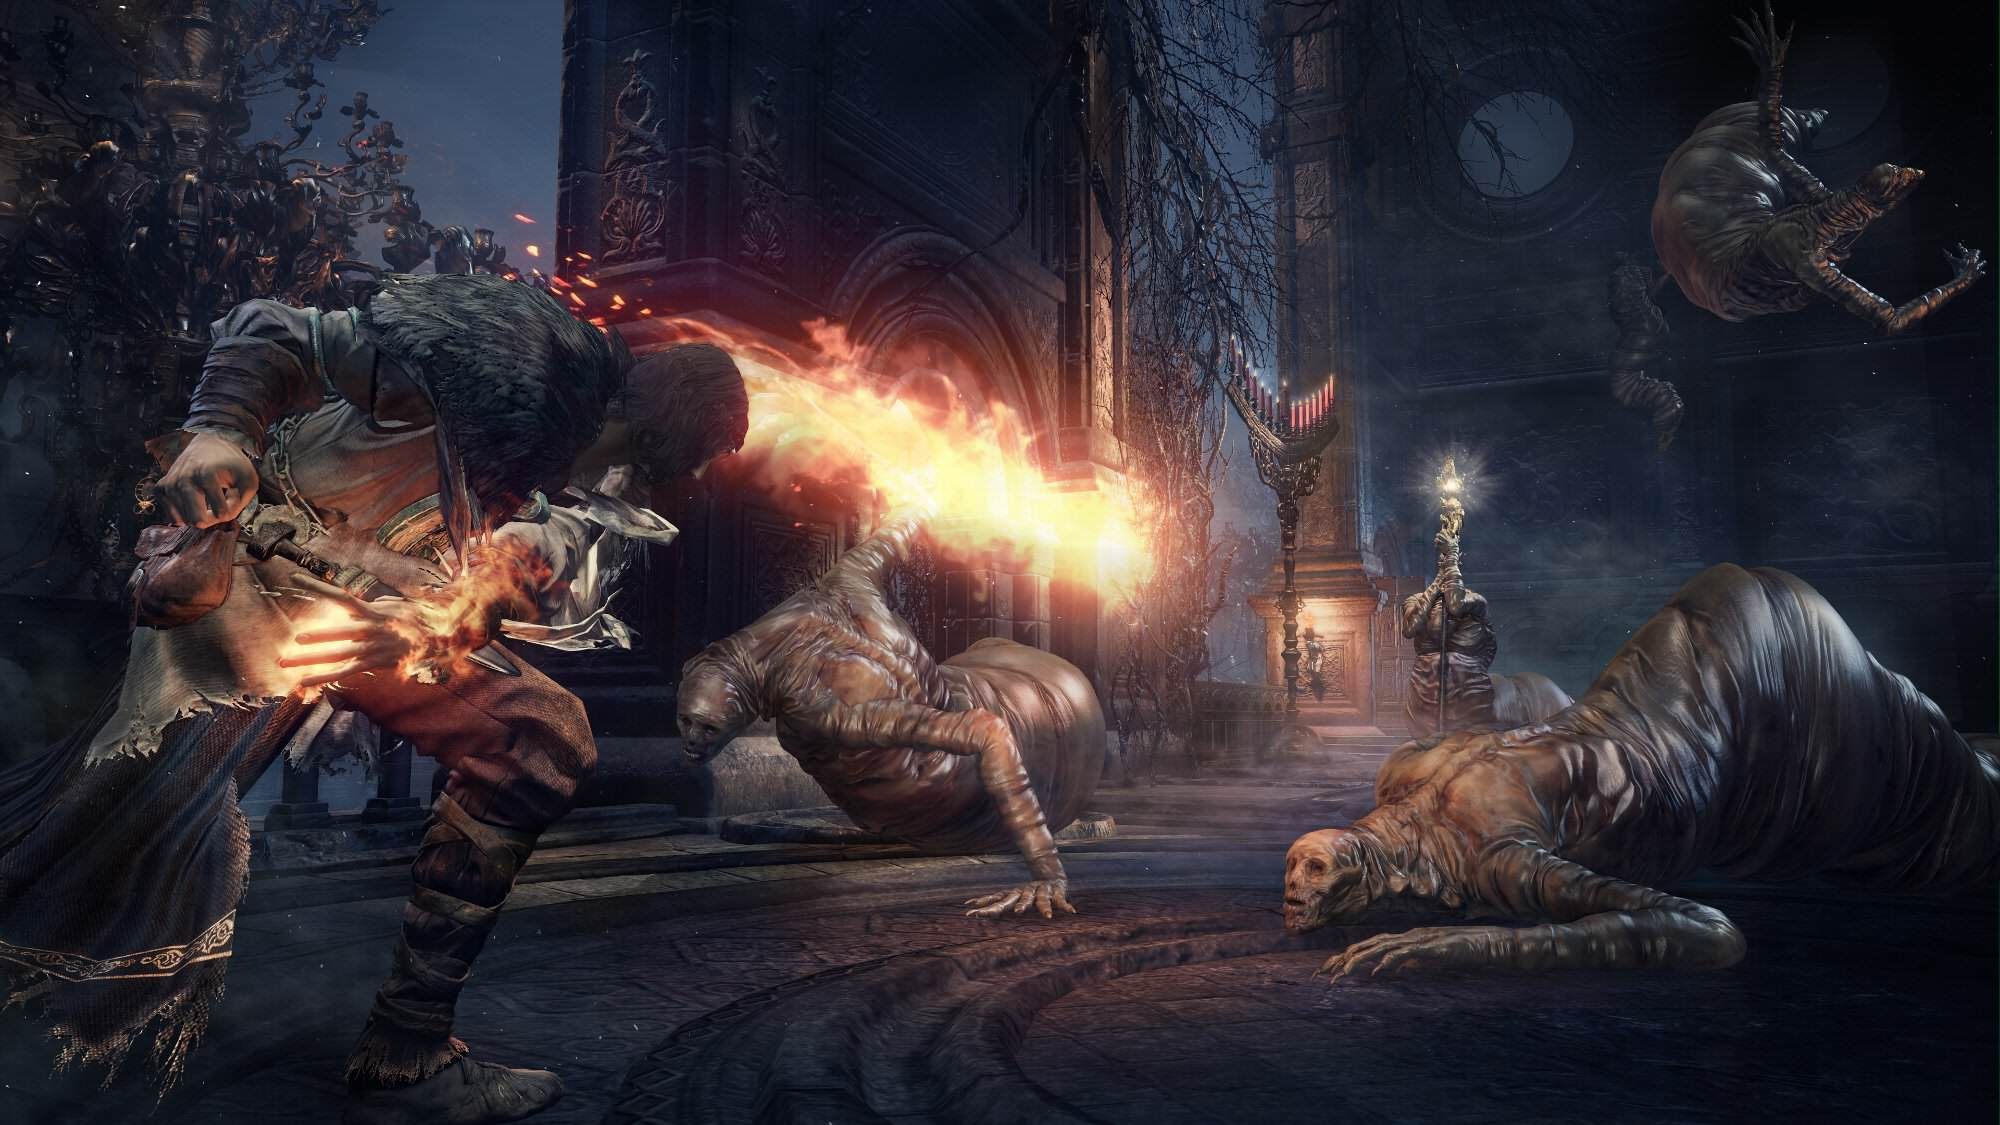 New Dark Souls 3 Screenshots Reveal All Kinds Of New Info pyromancer noscale 1